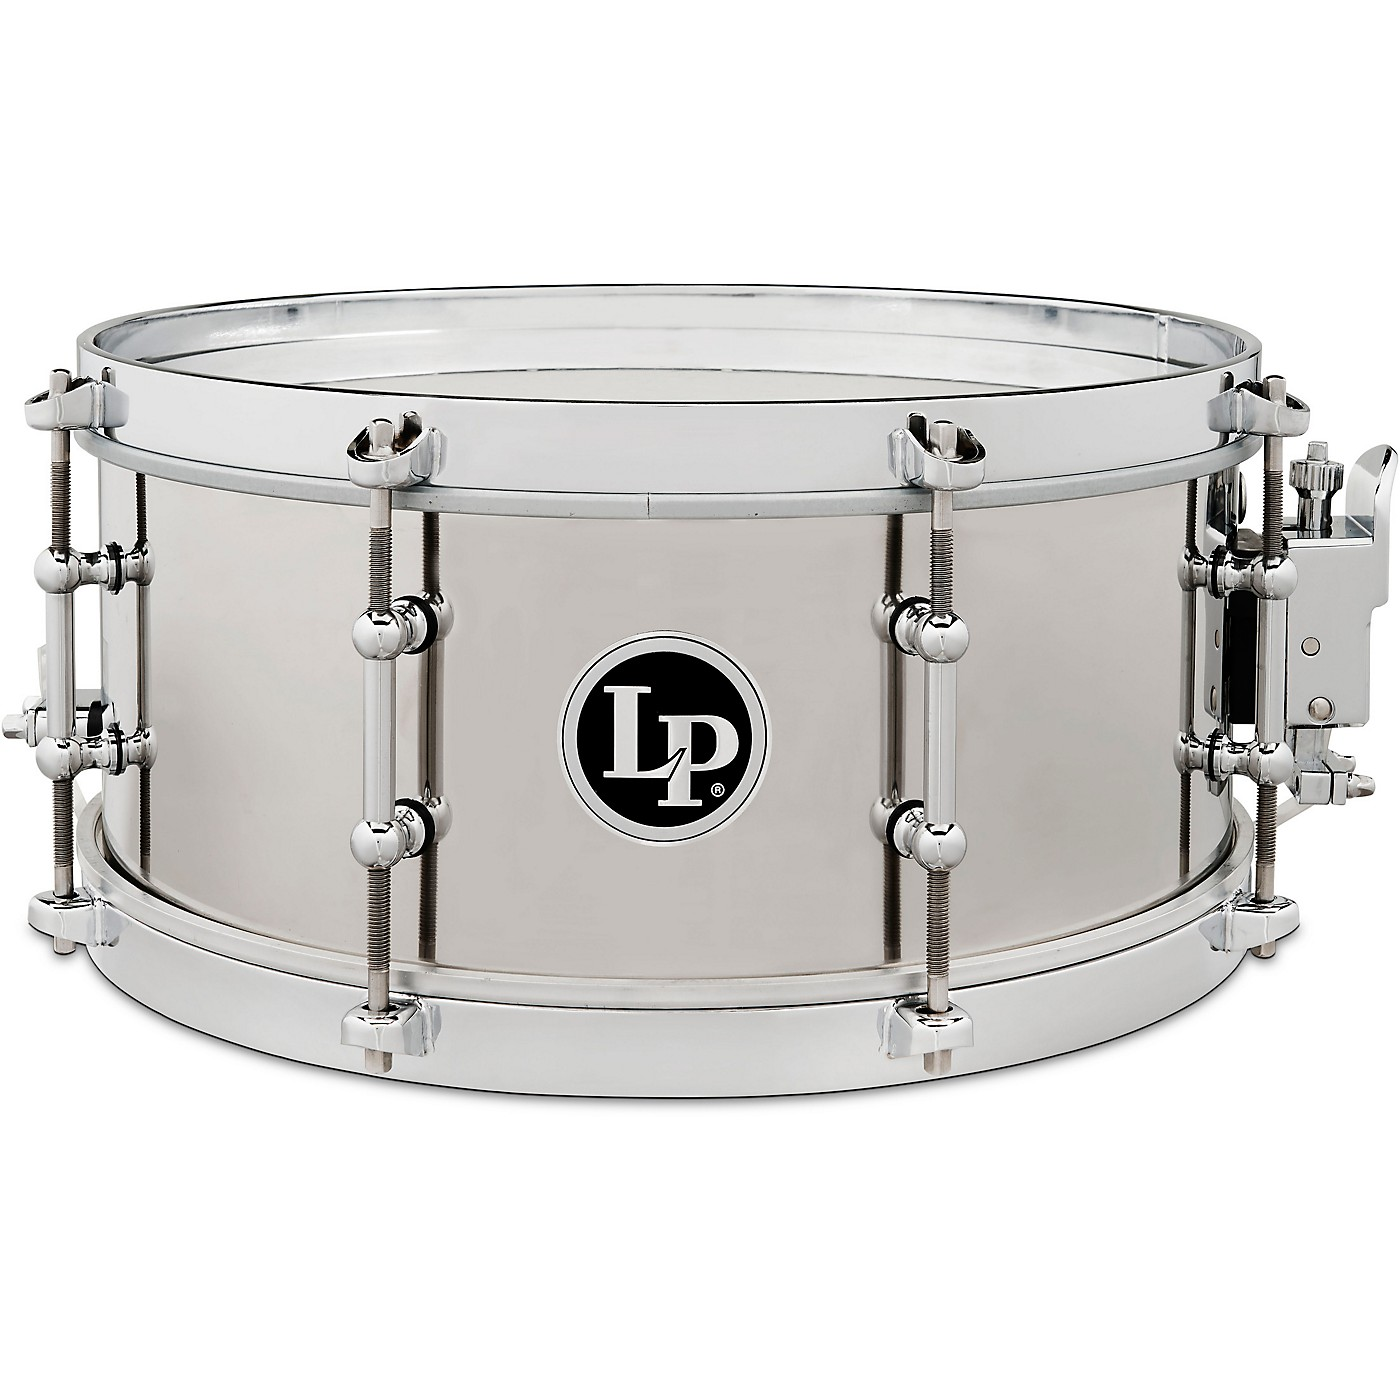 LP Stainless Steel Salsa Snare Drum thumbnail